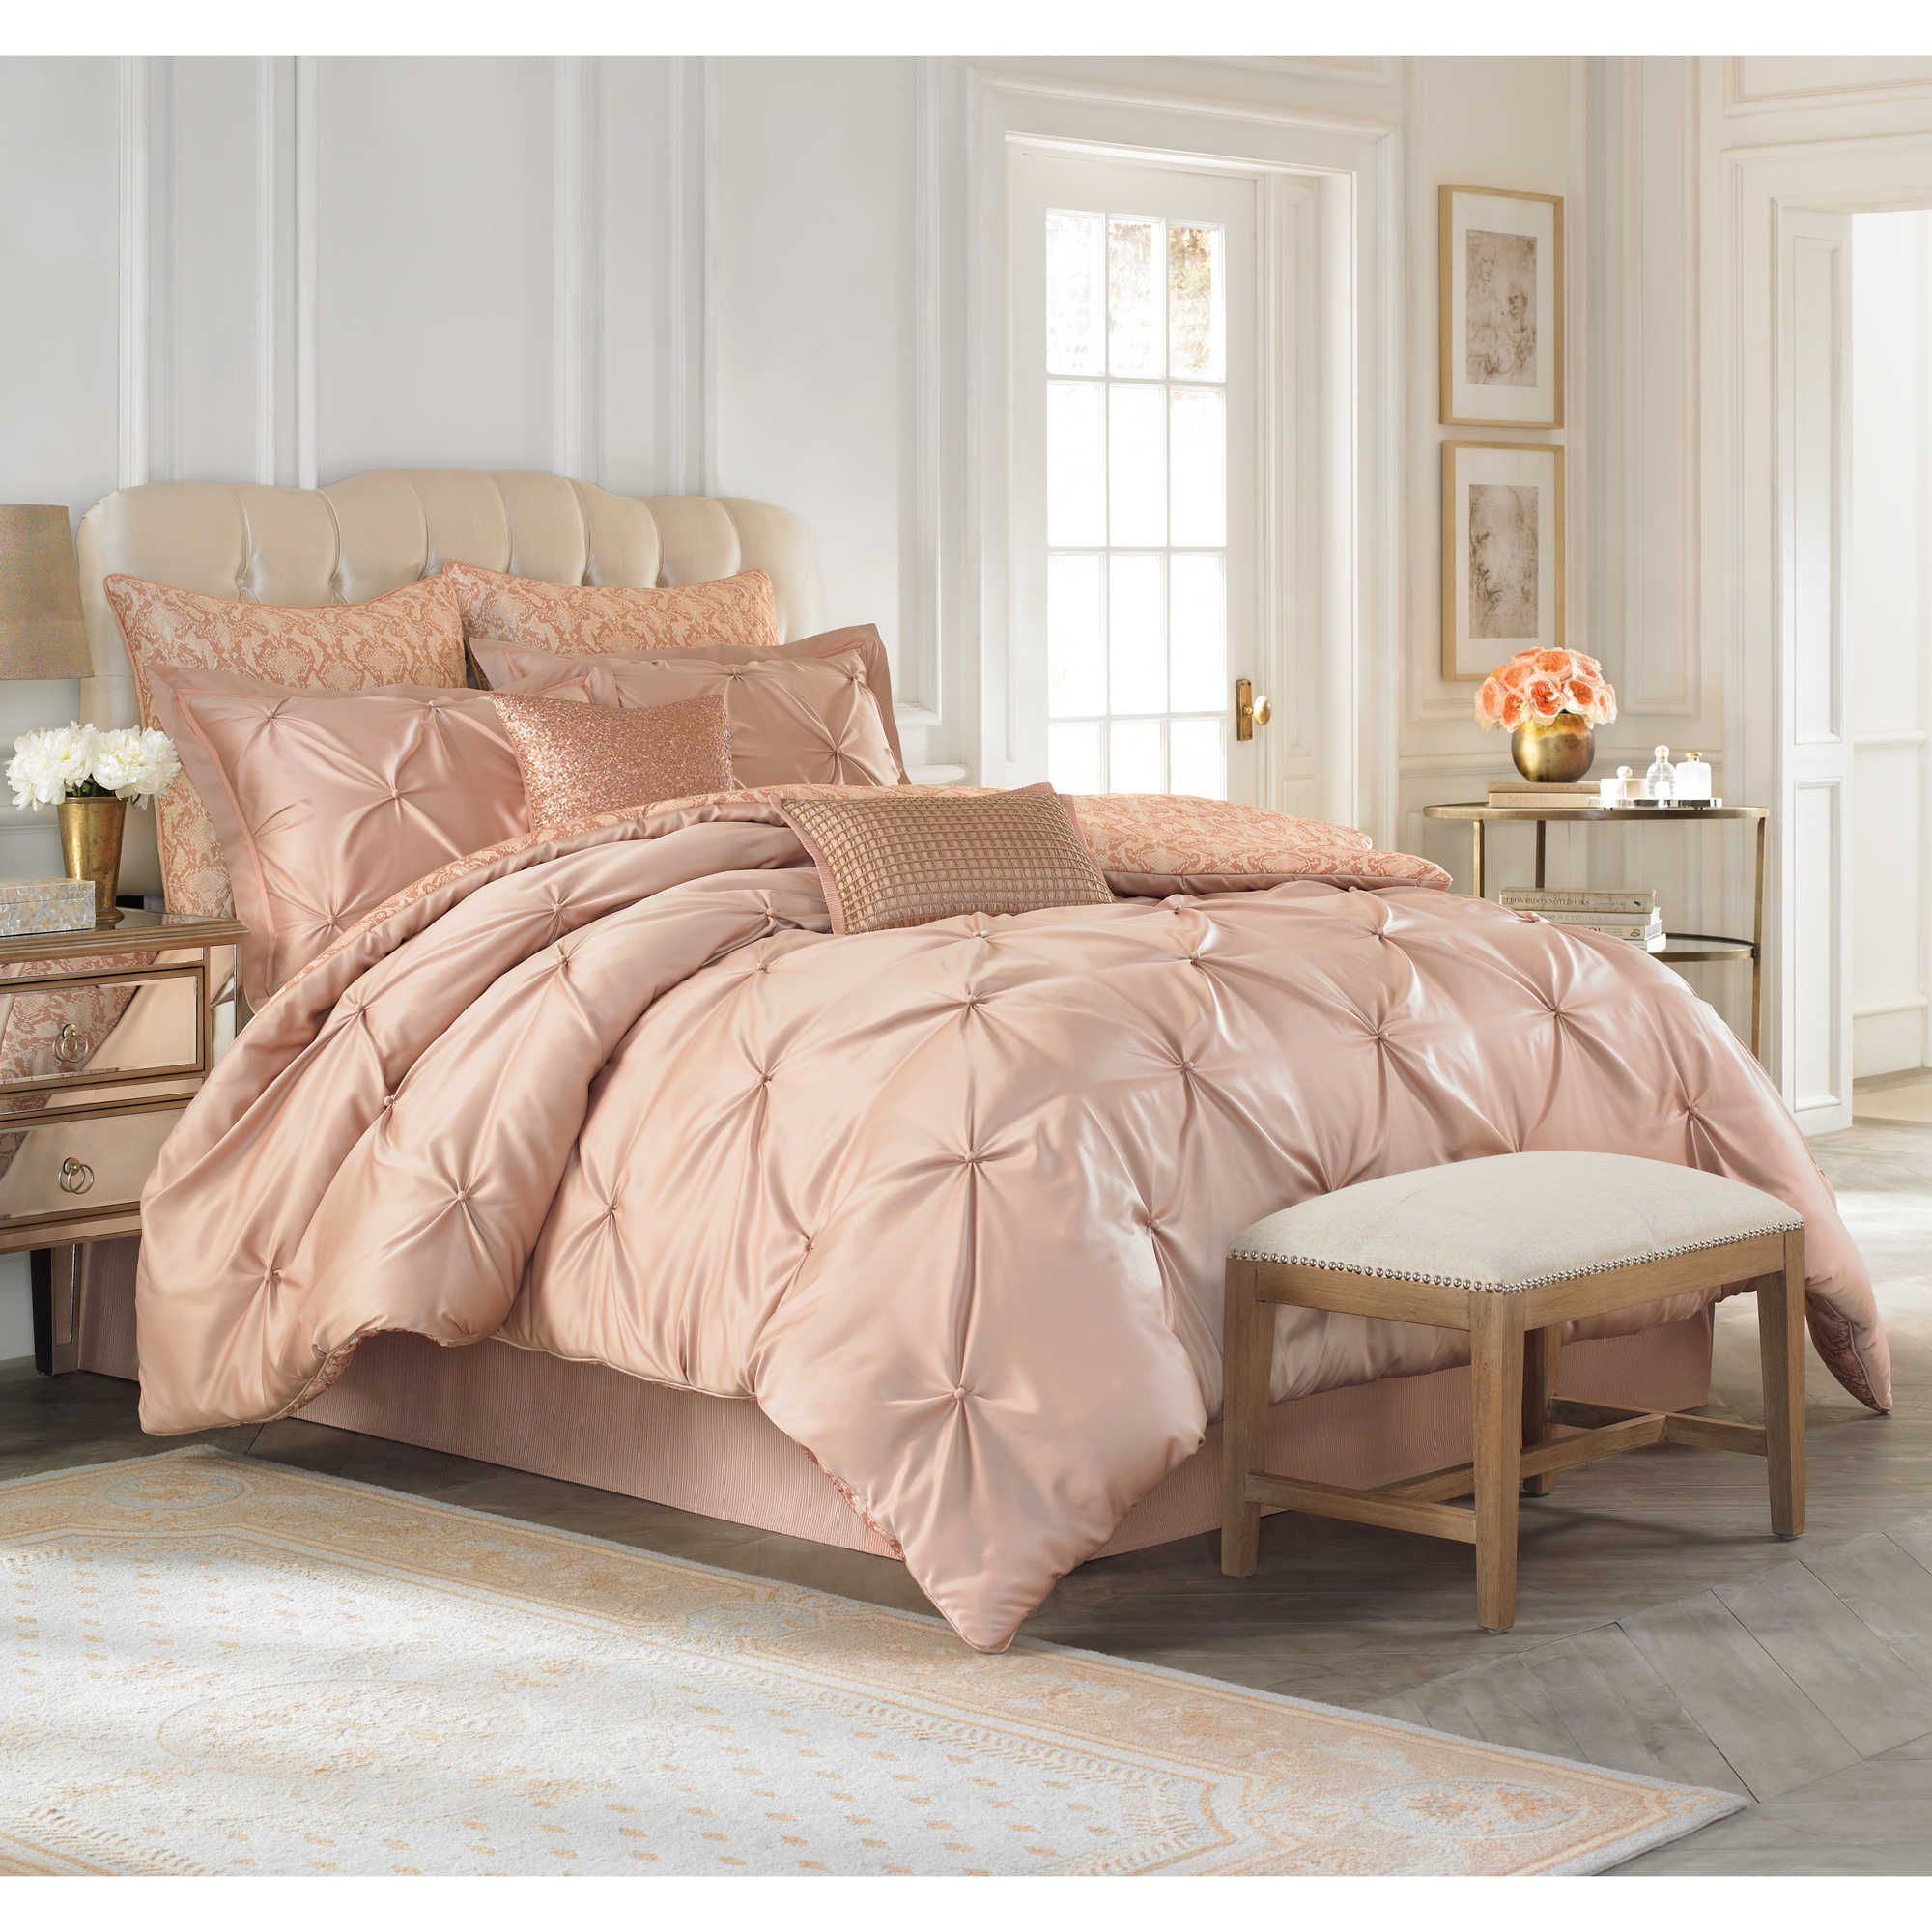 Vince Camuto Rose Gold forter Set Bedroom Pinterest